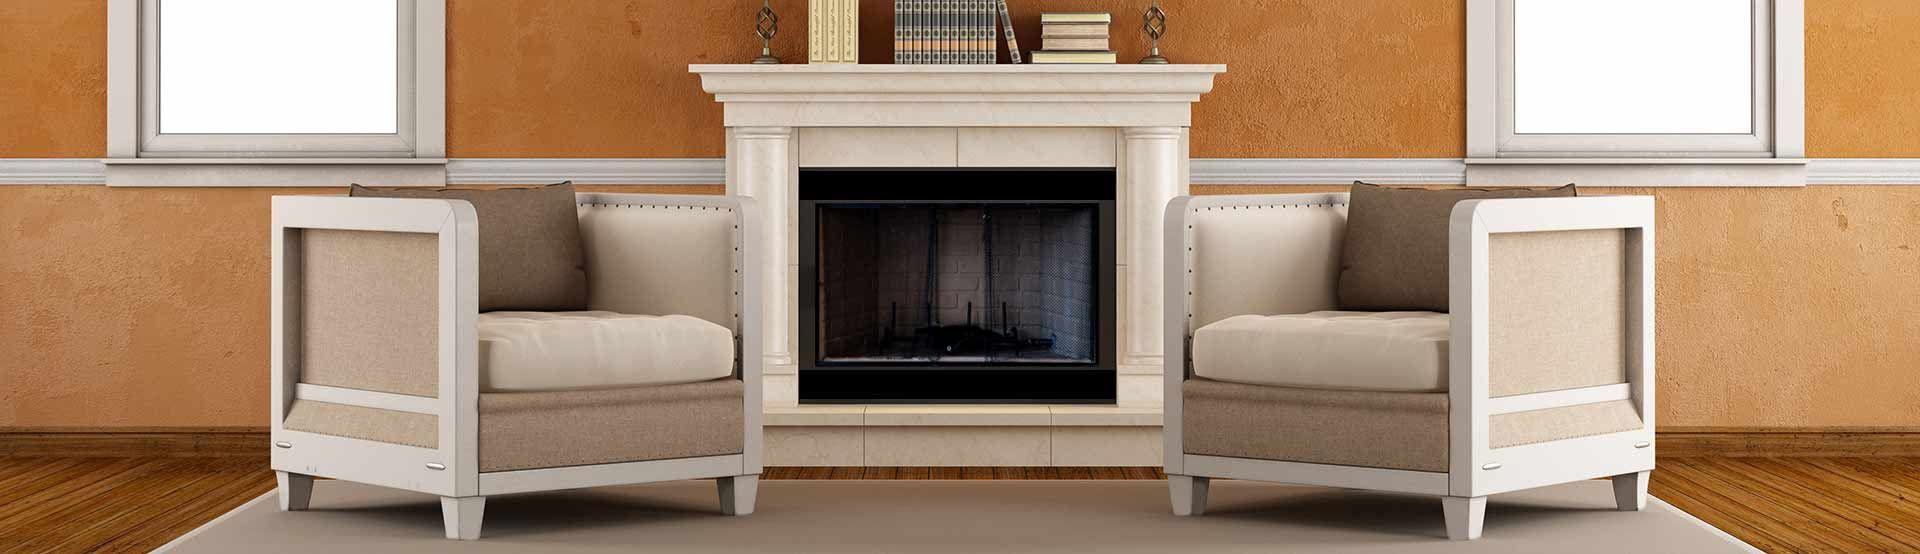 Don T Let Your Fireplace Heat Your Home In The Summer Block Warm Air From Vents And Flues With All Of Our Products Check Out Our New Webs Fireplace Cover